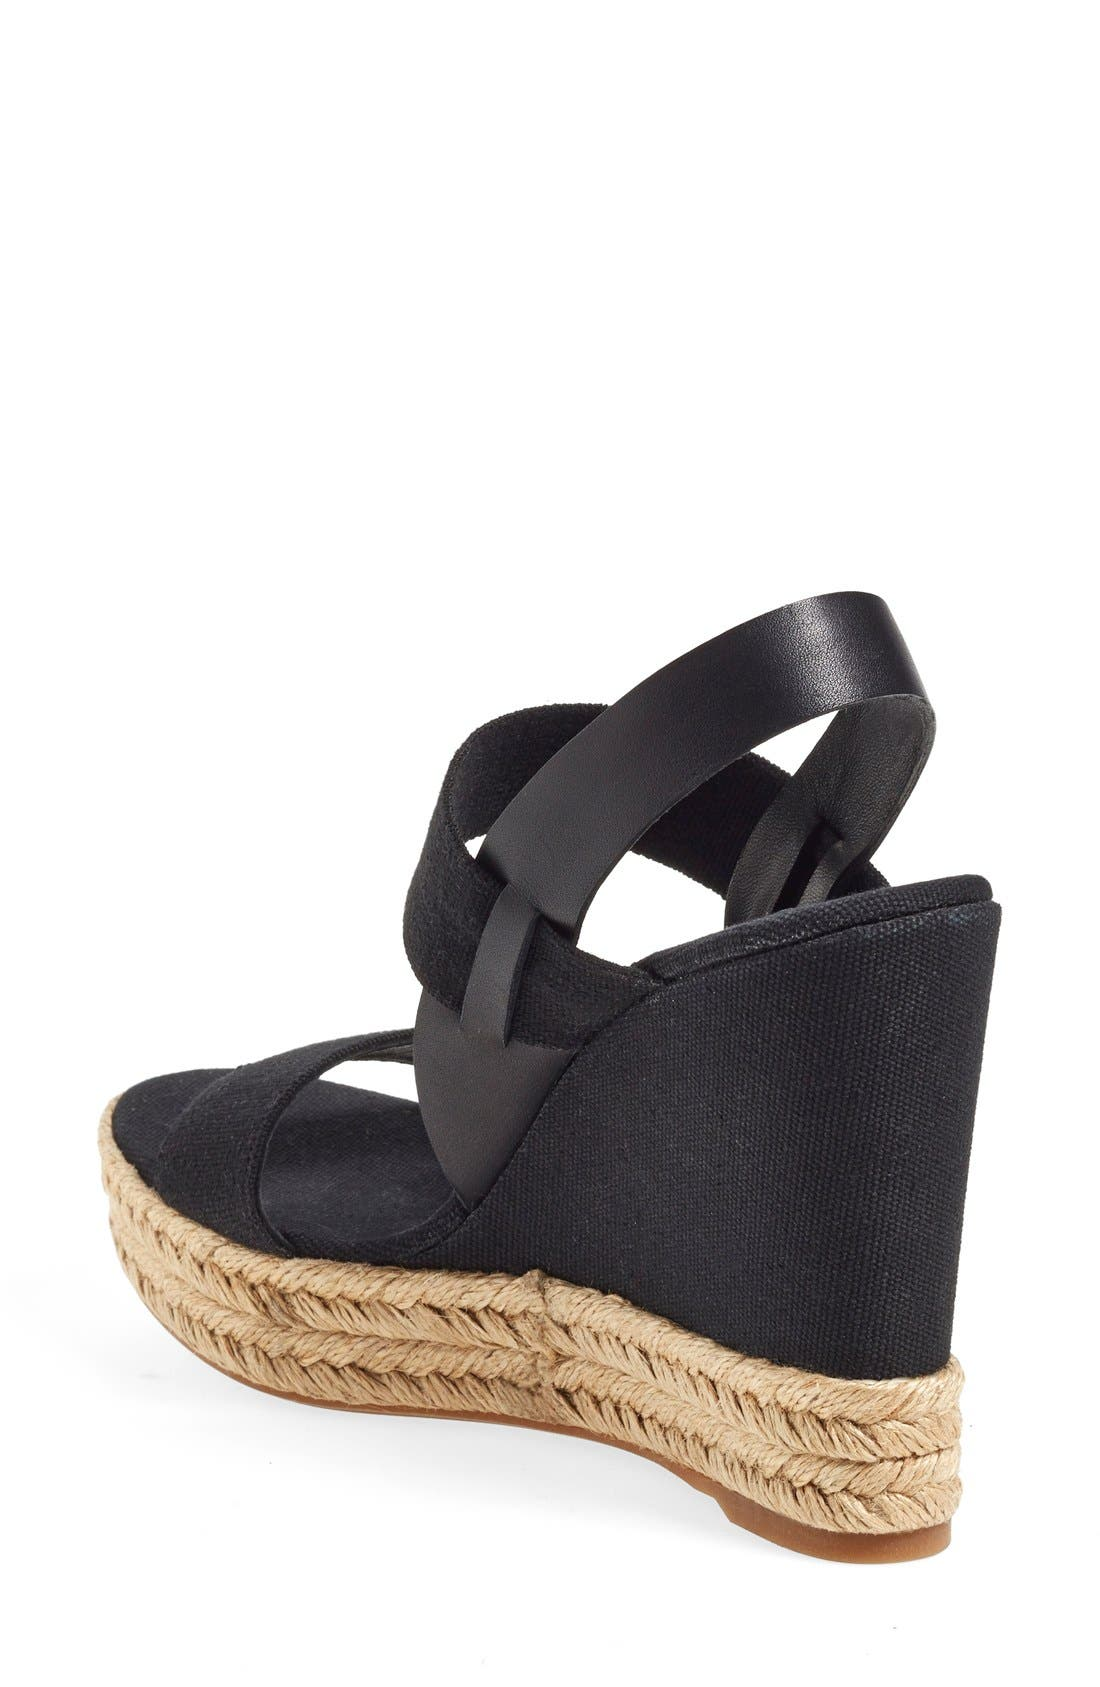 TORY BURCH, Espadrille Wedge Sandal, Alternate thumbnail 2, color, 009